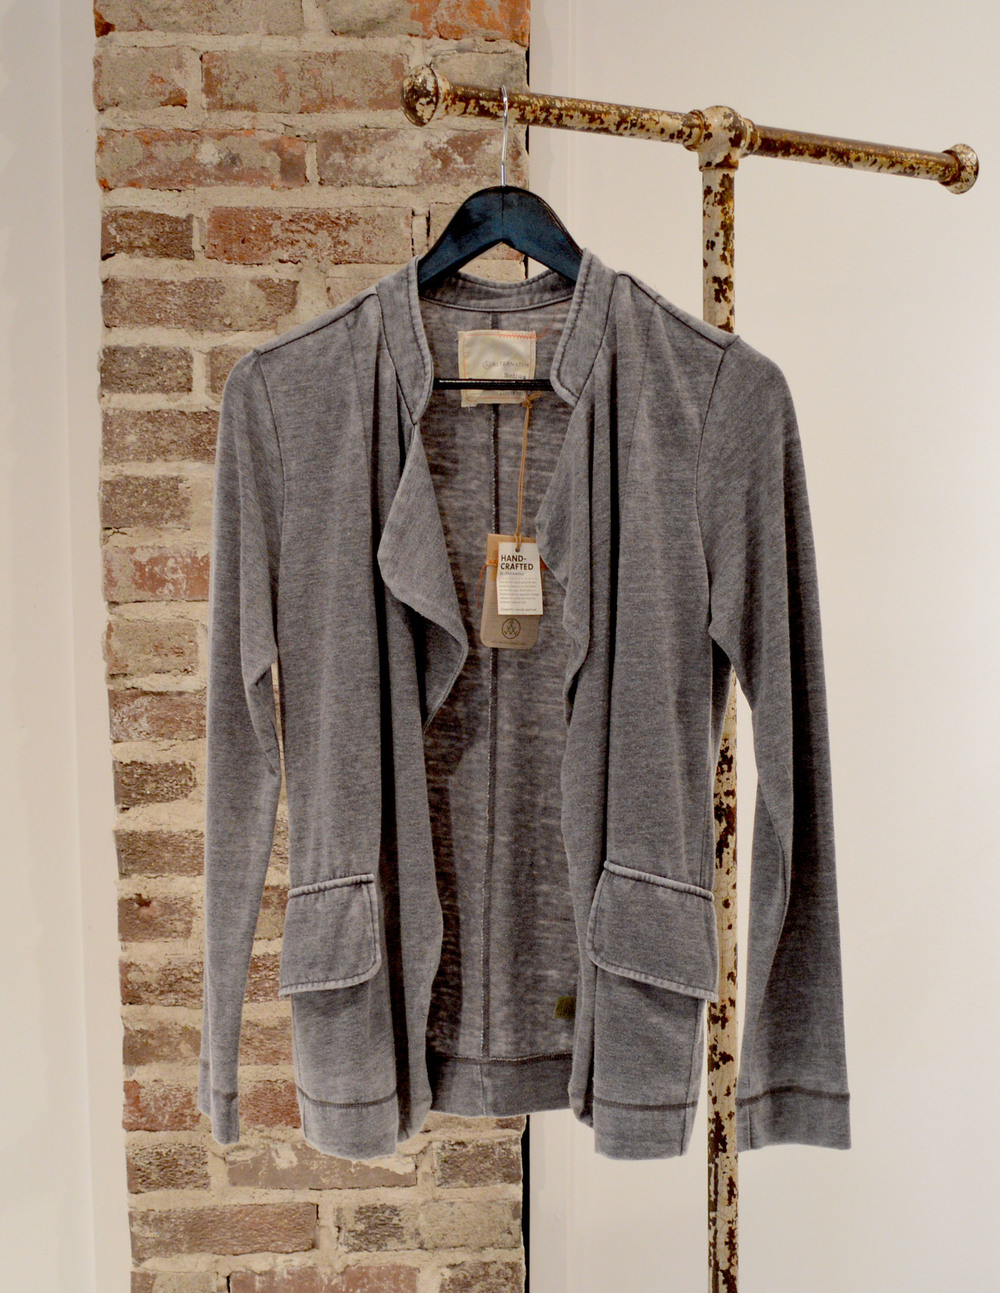 Faded grey blazer - pair with some boyfriend jeans and a white tee and you can't go wrong!